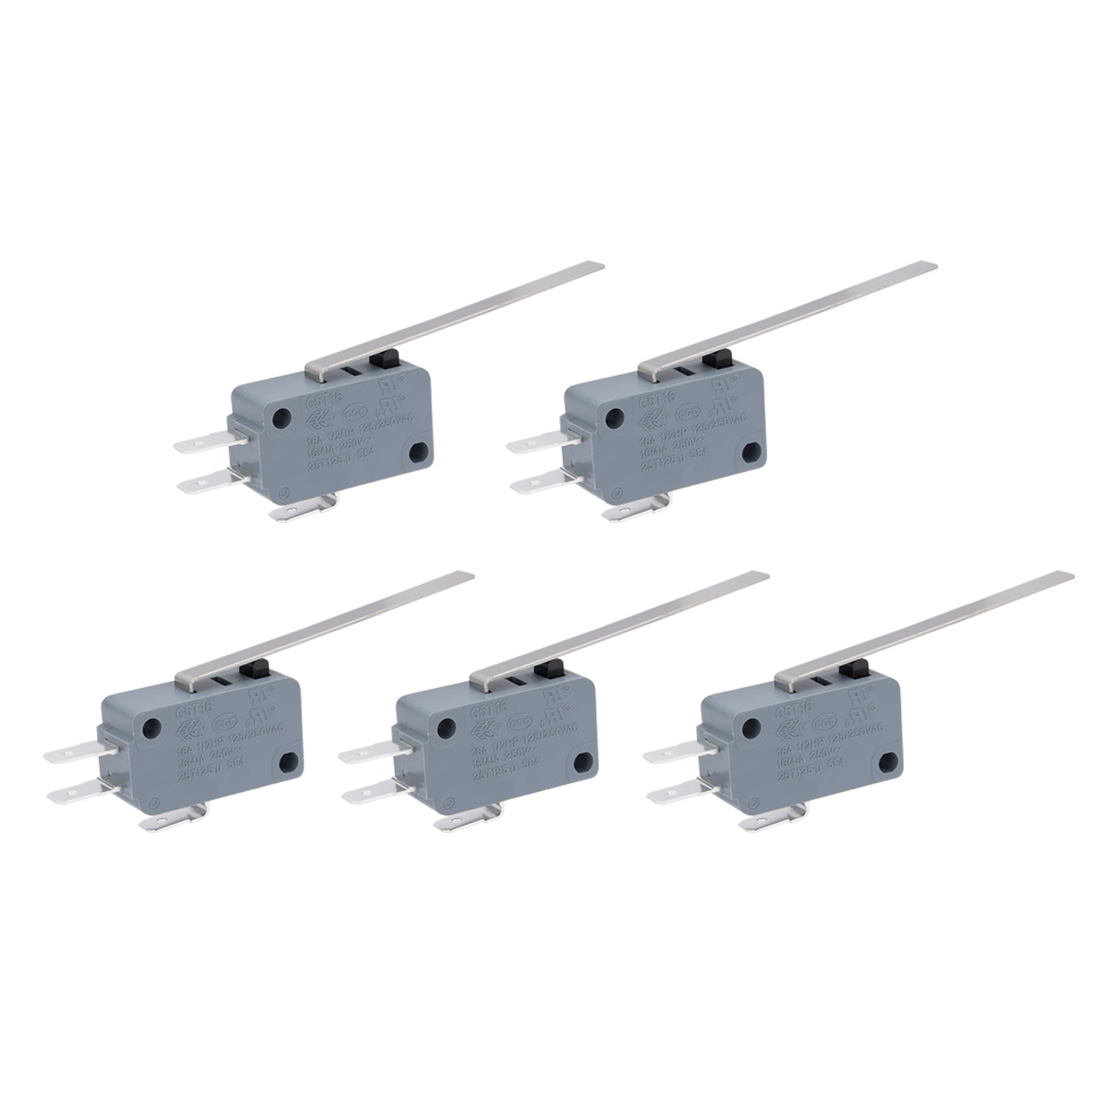 5 Pcs AC 250V 16A SPDT Long Straight Hinge Lever Mini Limit Micro Switch Green